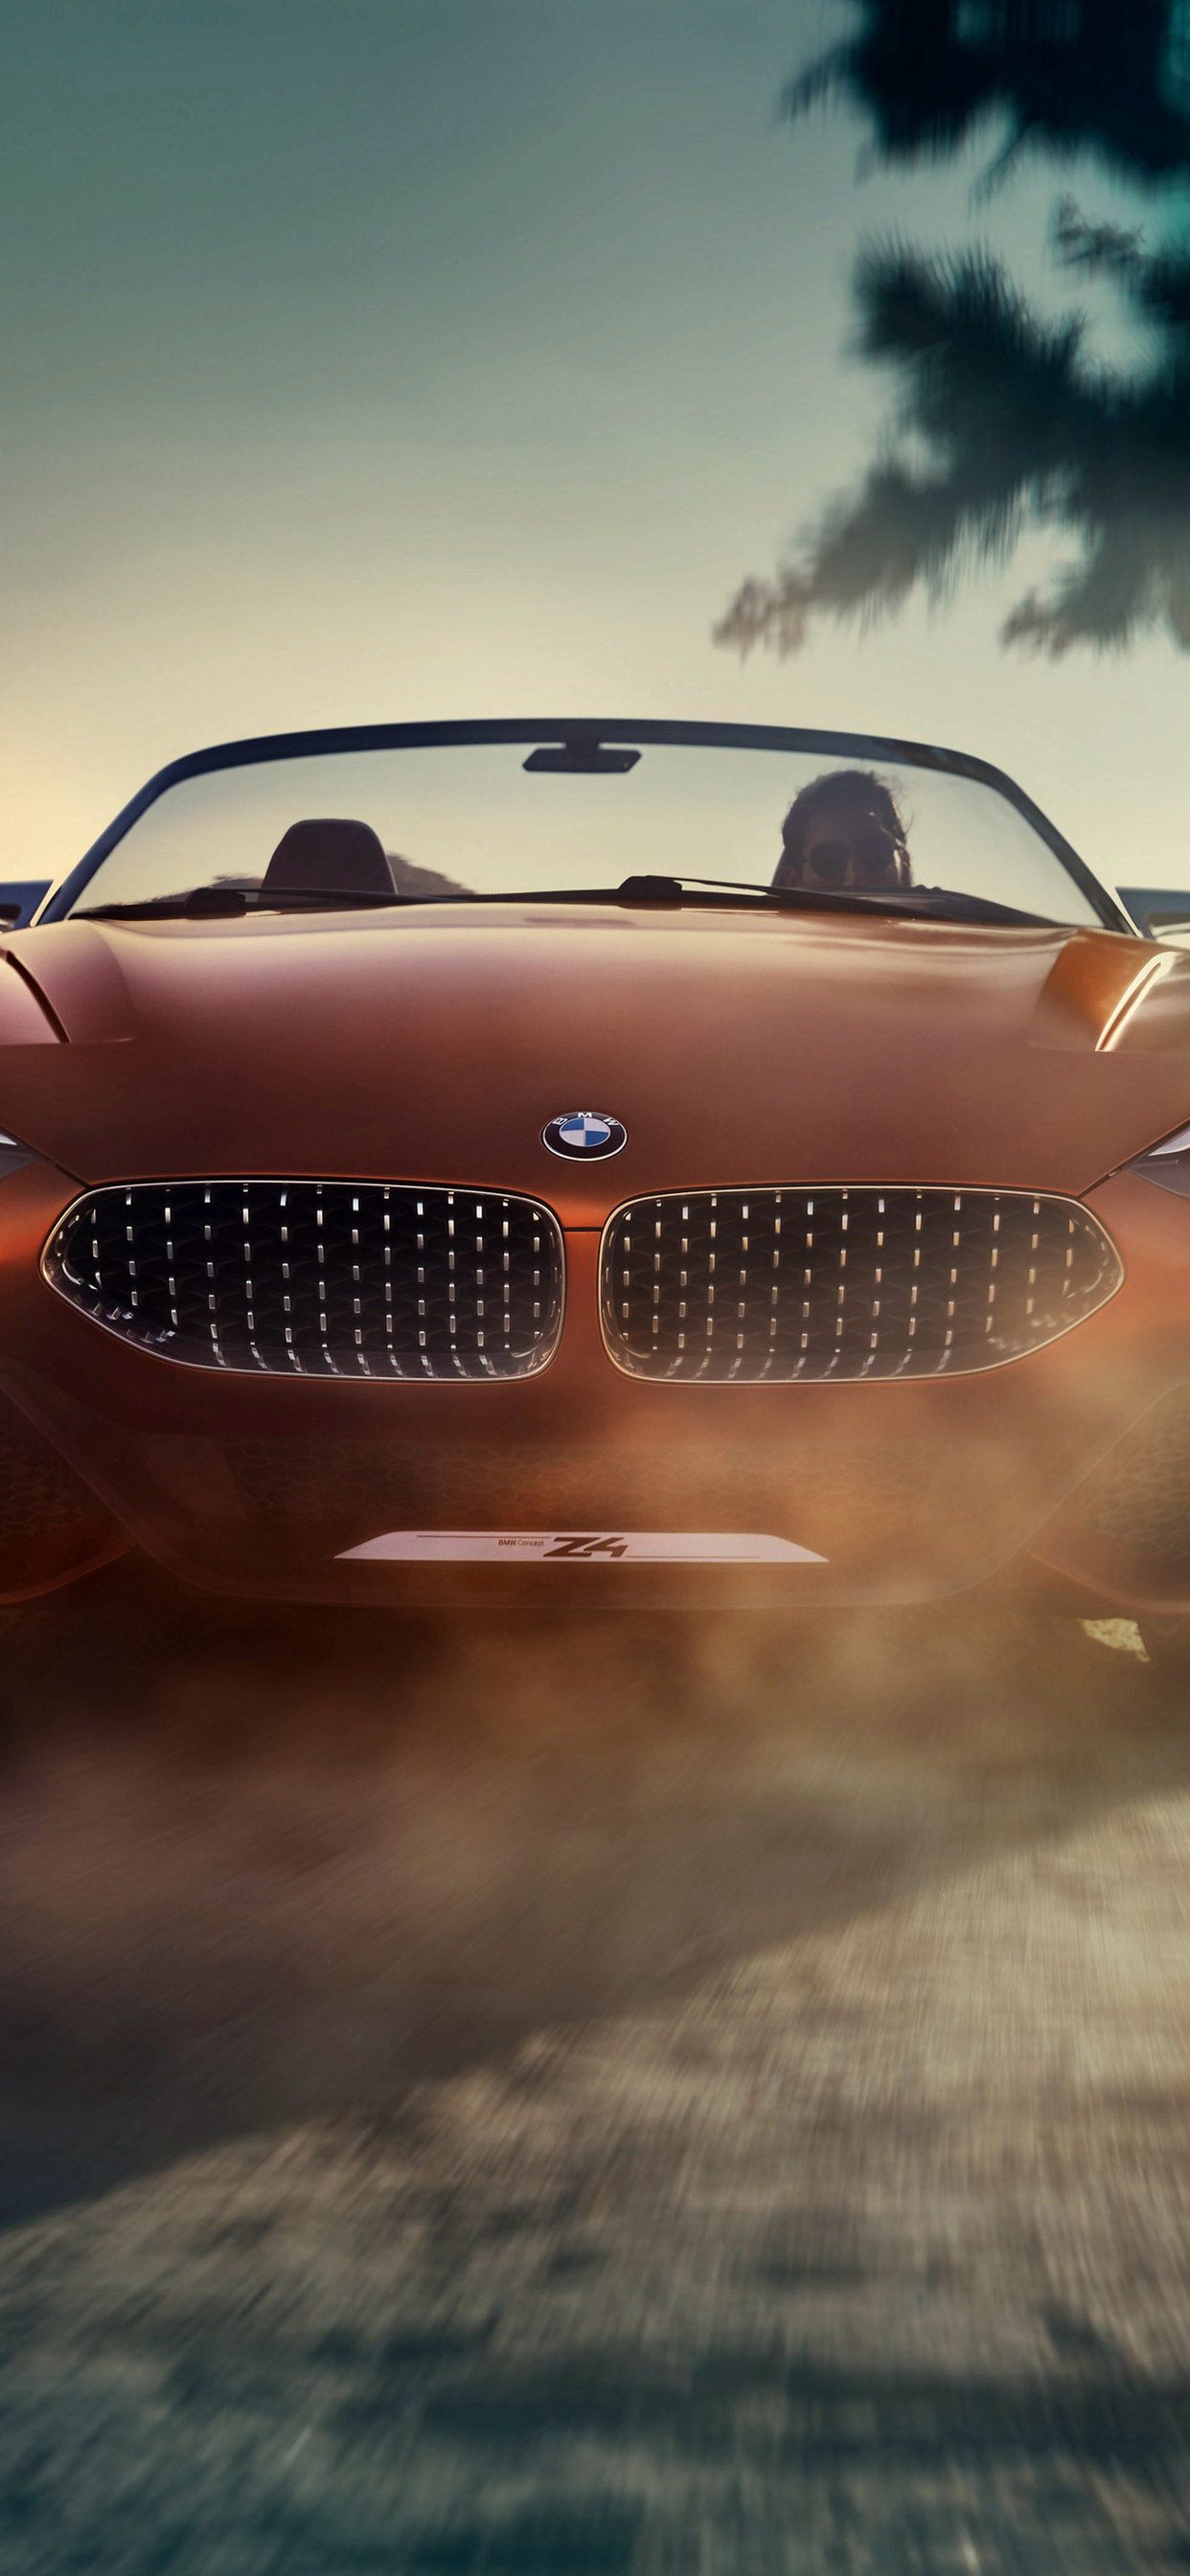 1242x2688 Bmw Concept Z4 4k Front Iphone Xs Max Hd 4k Wallpapers